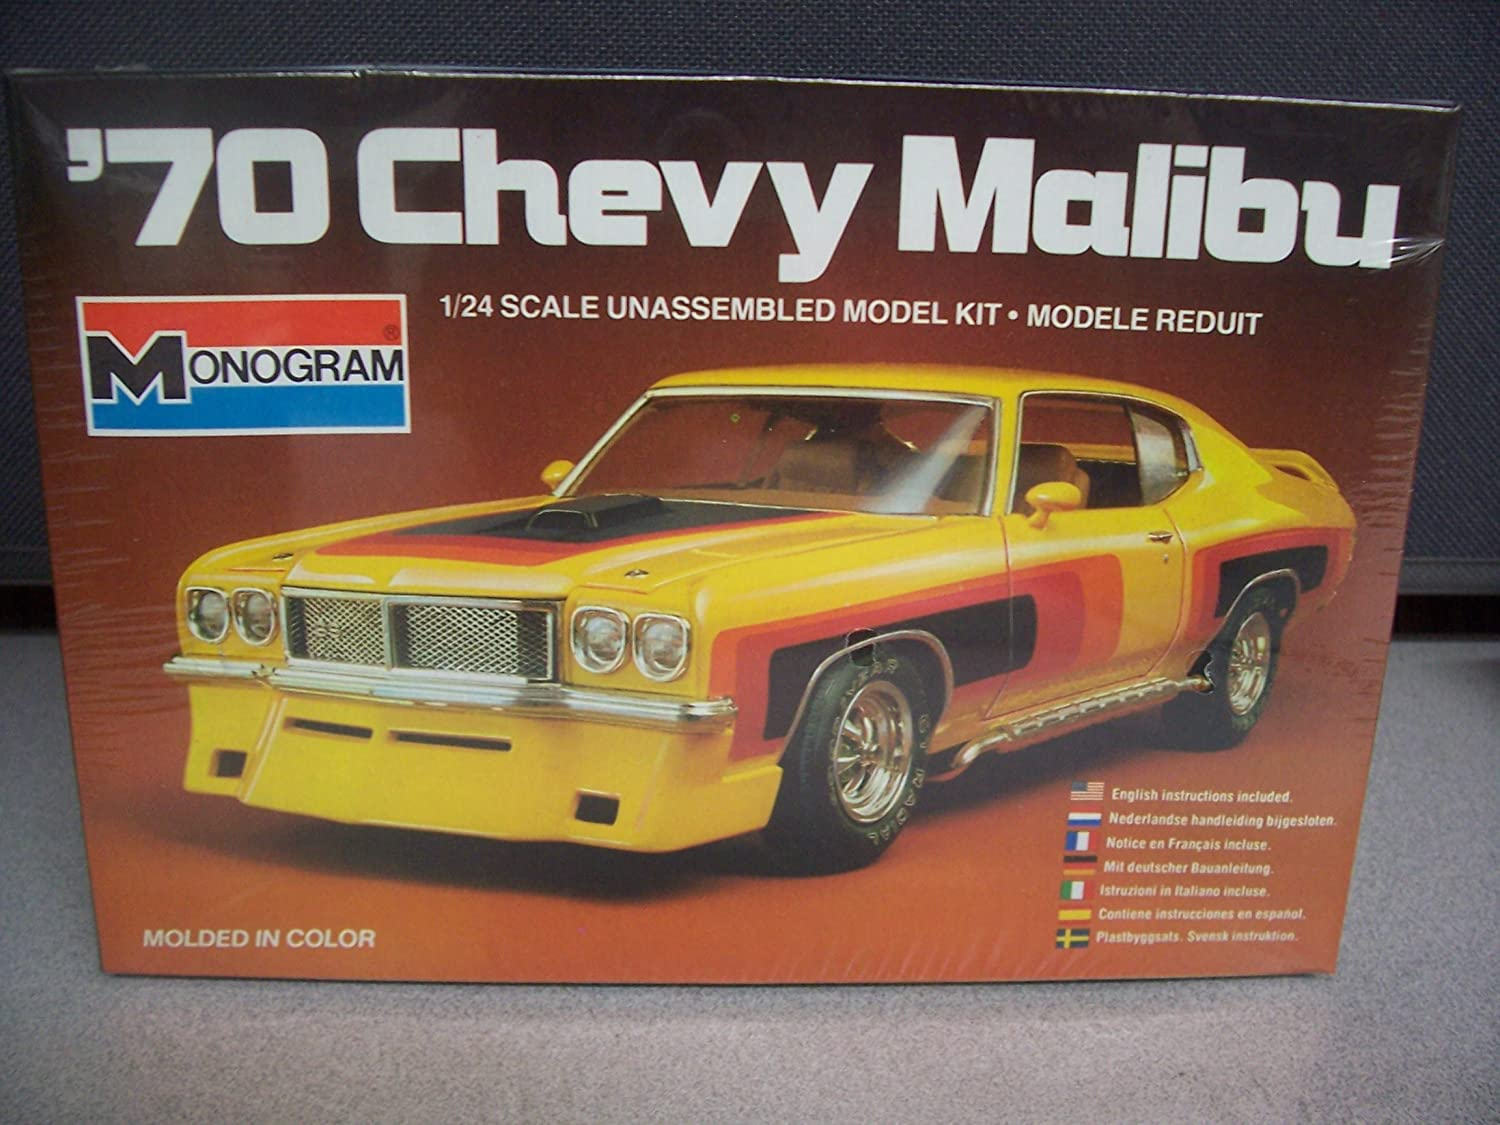 #2284 Monogram 70 Chevy Malibu 1/24 Plastic Model Kit,Needs Assembly